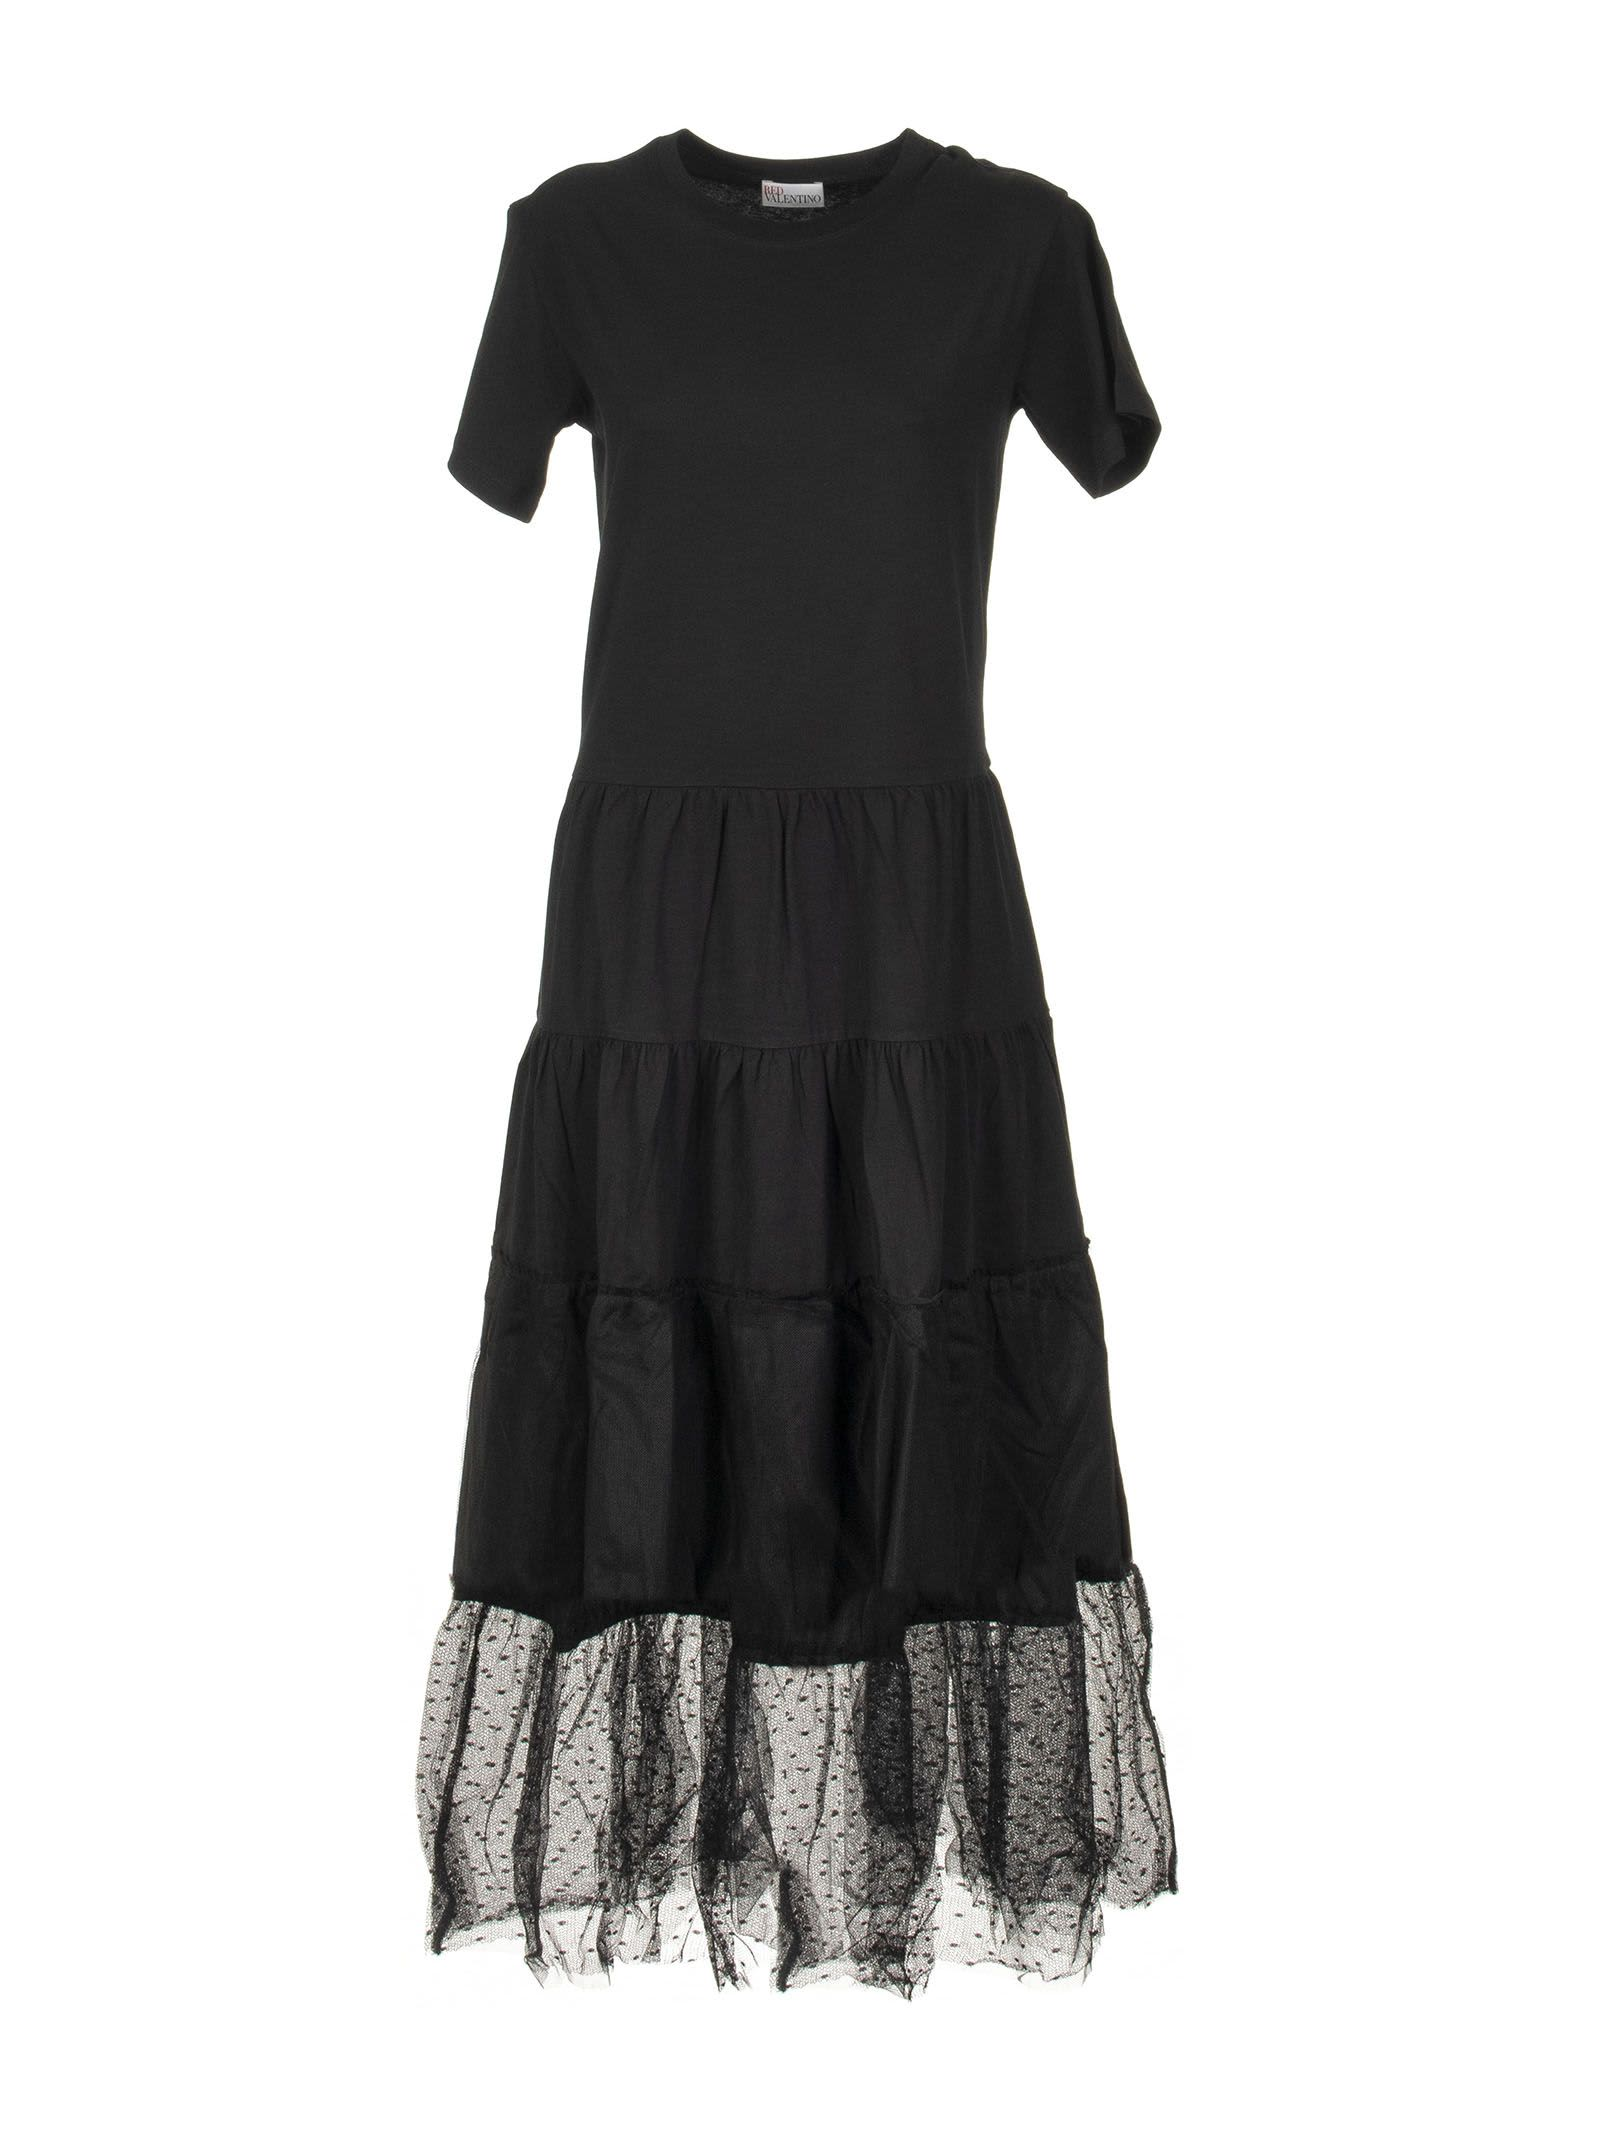 Buy RED Valentino Black Cotton Dress With Tulle online, shop RED Valentino with free shipping